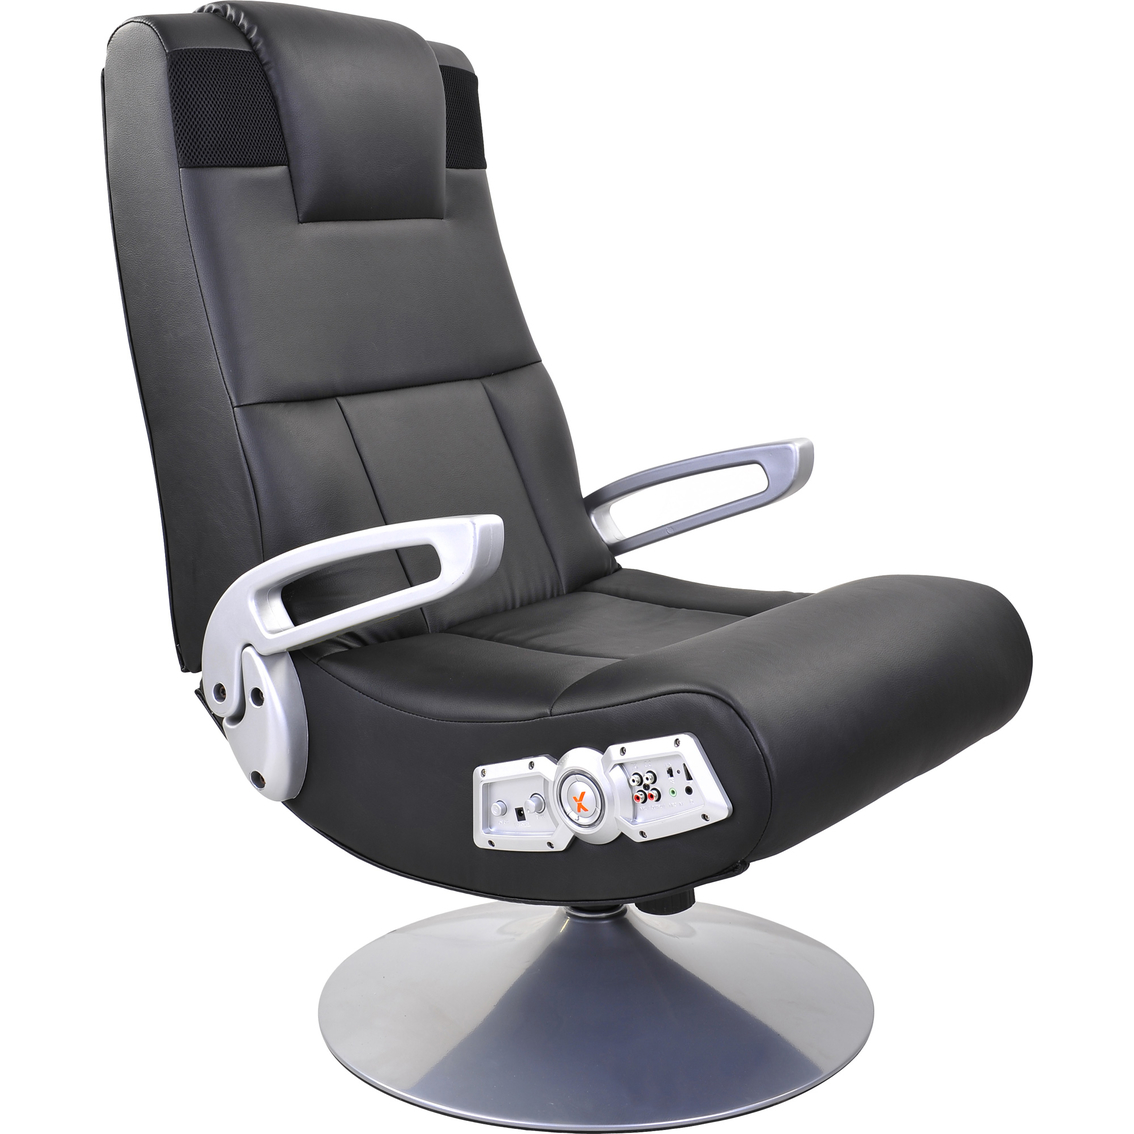 National Brand X Rocker Sound Gaming Chair Pc Gaming Accessories Electronics Shop The Exchange